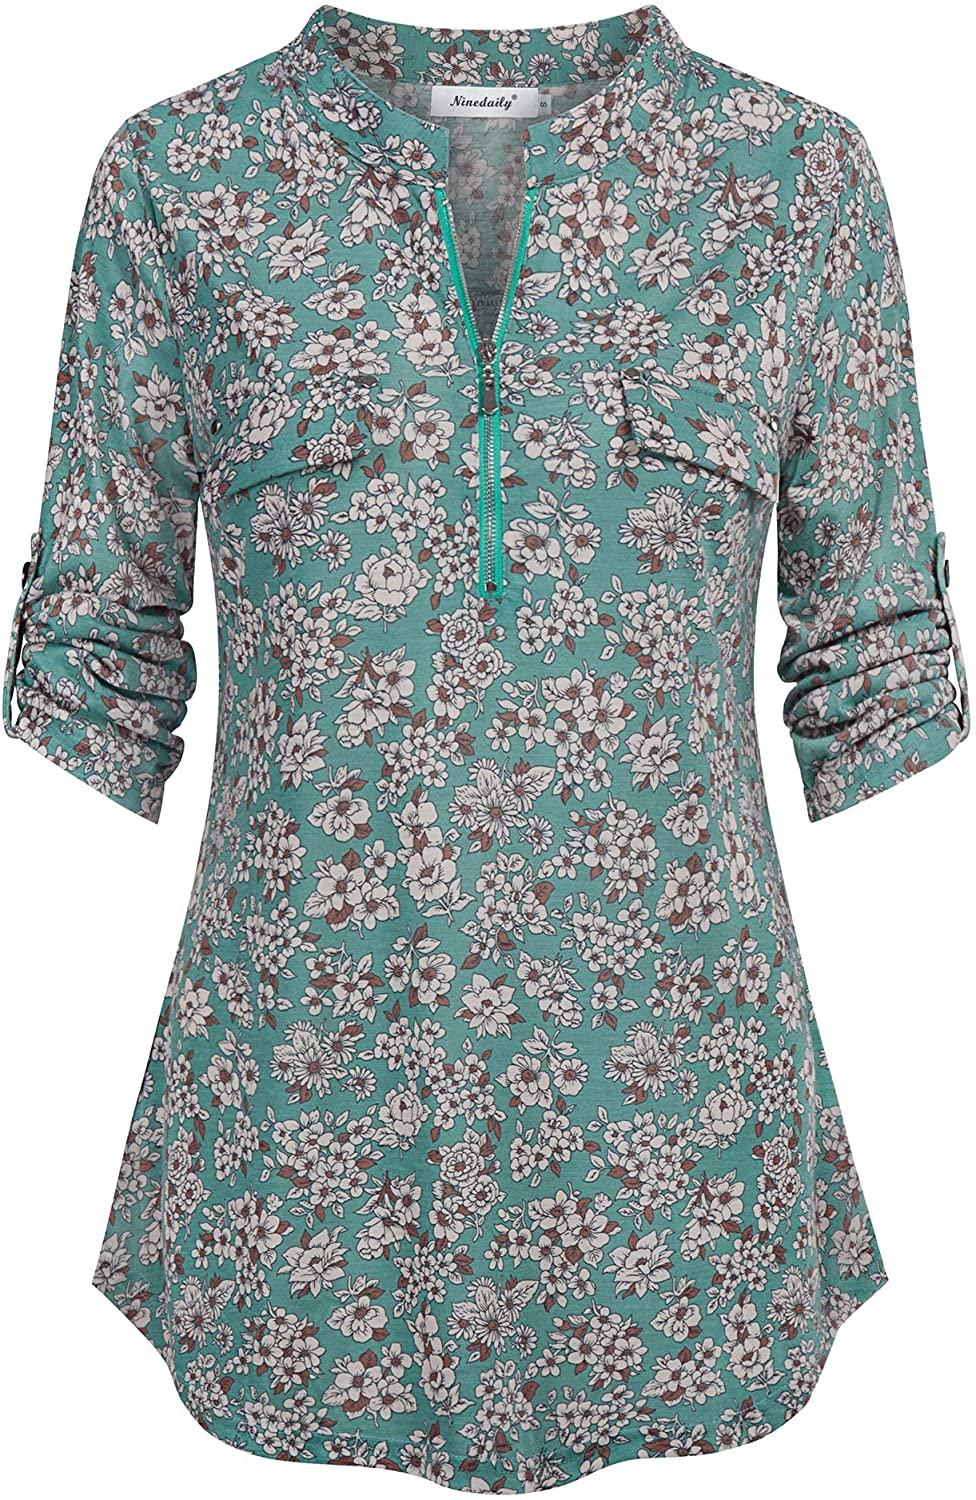 Ninedaily Women's 3/4 Sleeve Roll up Shirts Zip Floral Casual Tunic Blouse Tops